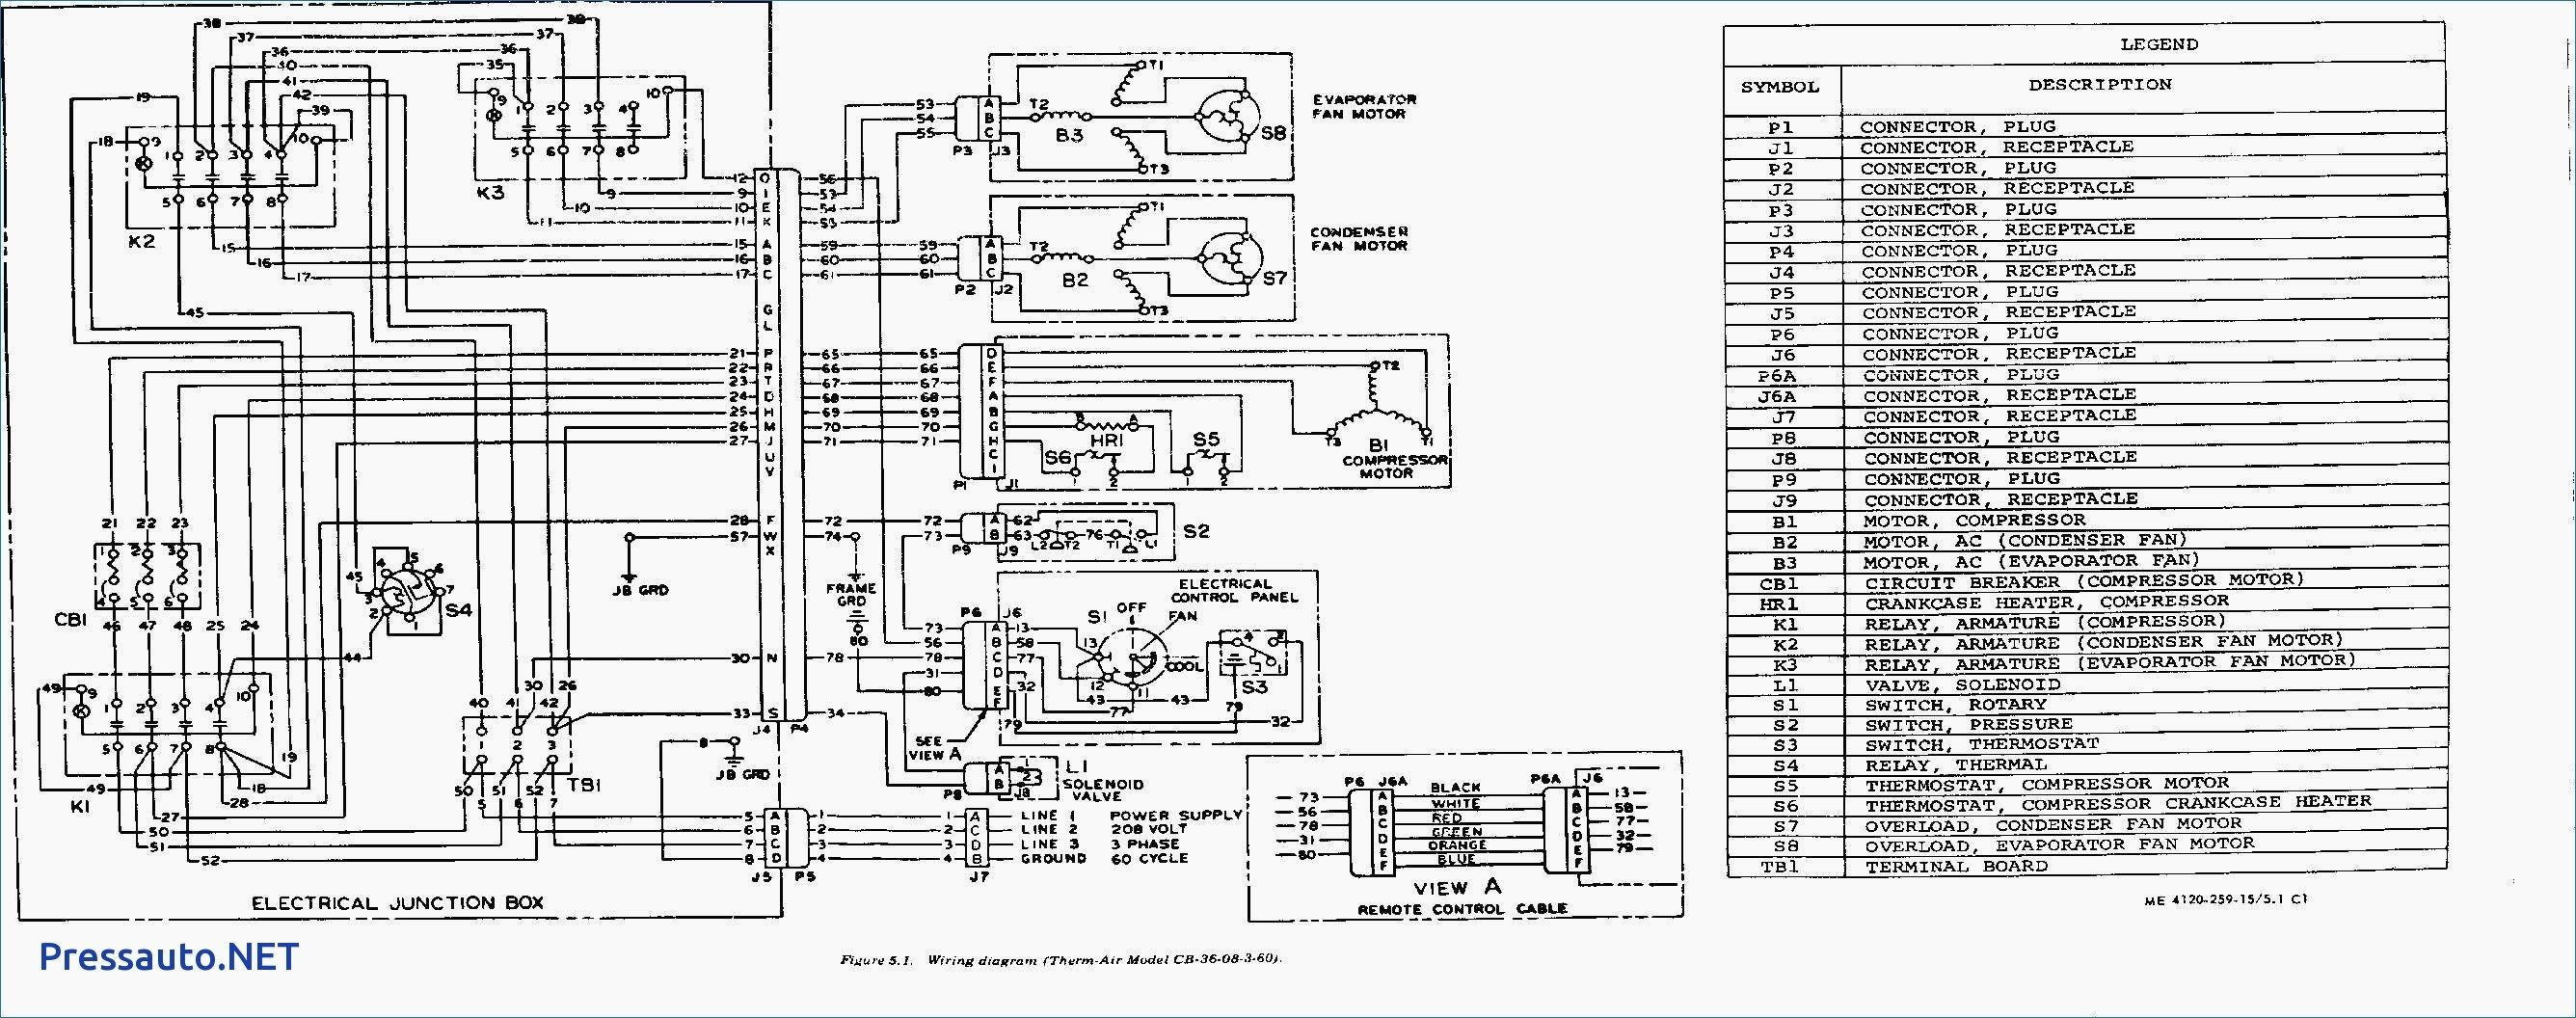 Uc Cat Wiring Diagram on